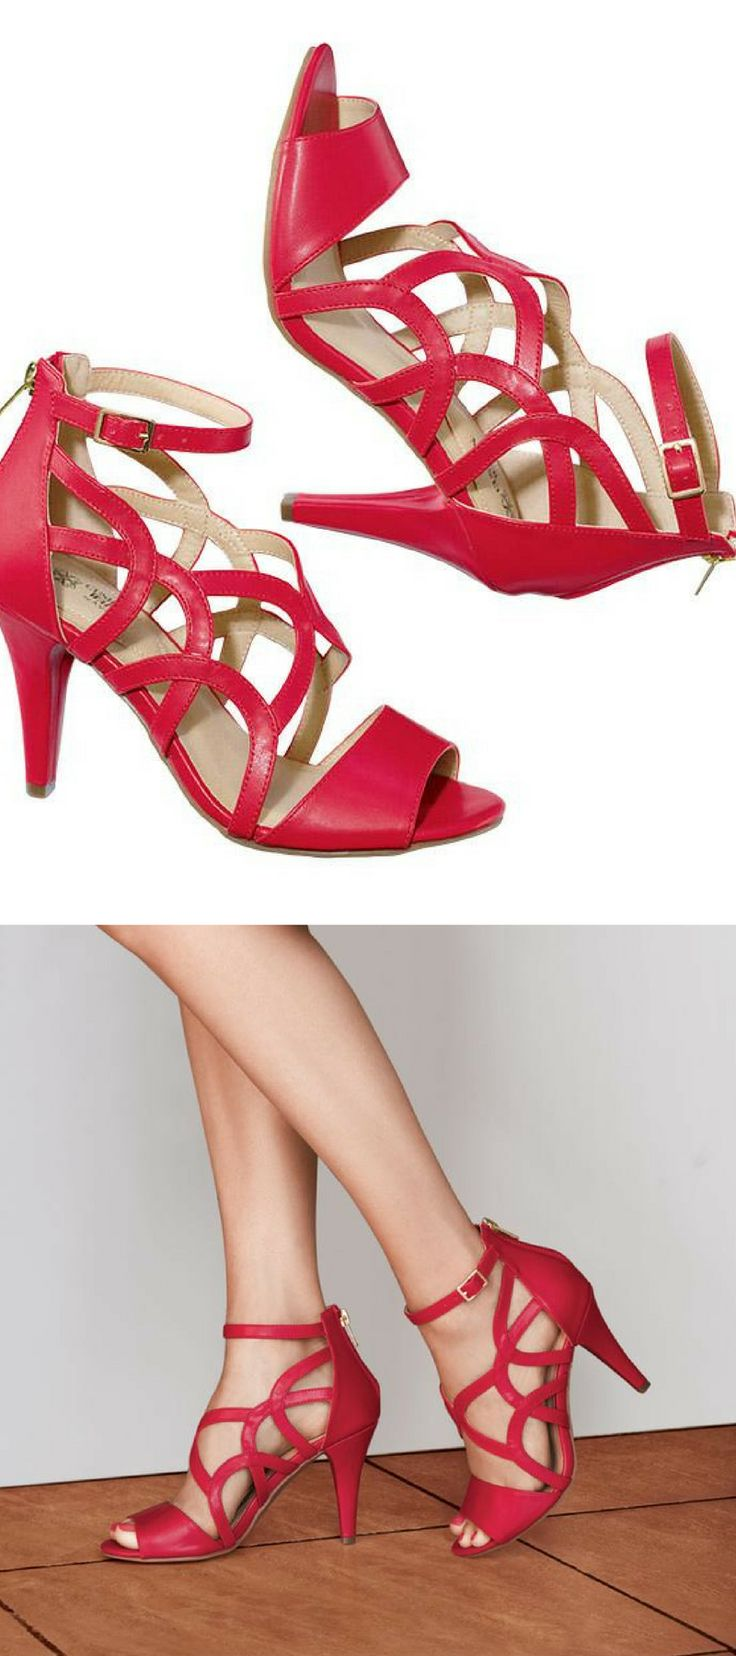 Strappy Day-to-Night Sandal